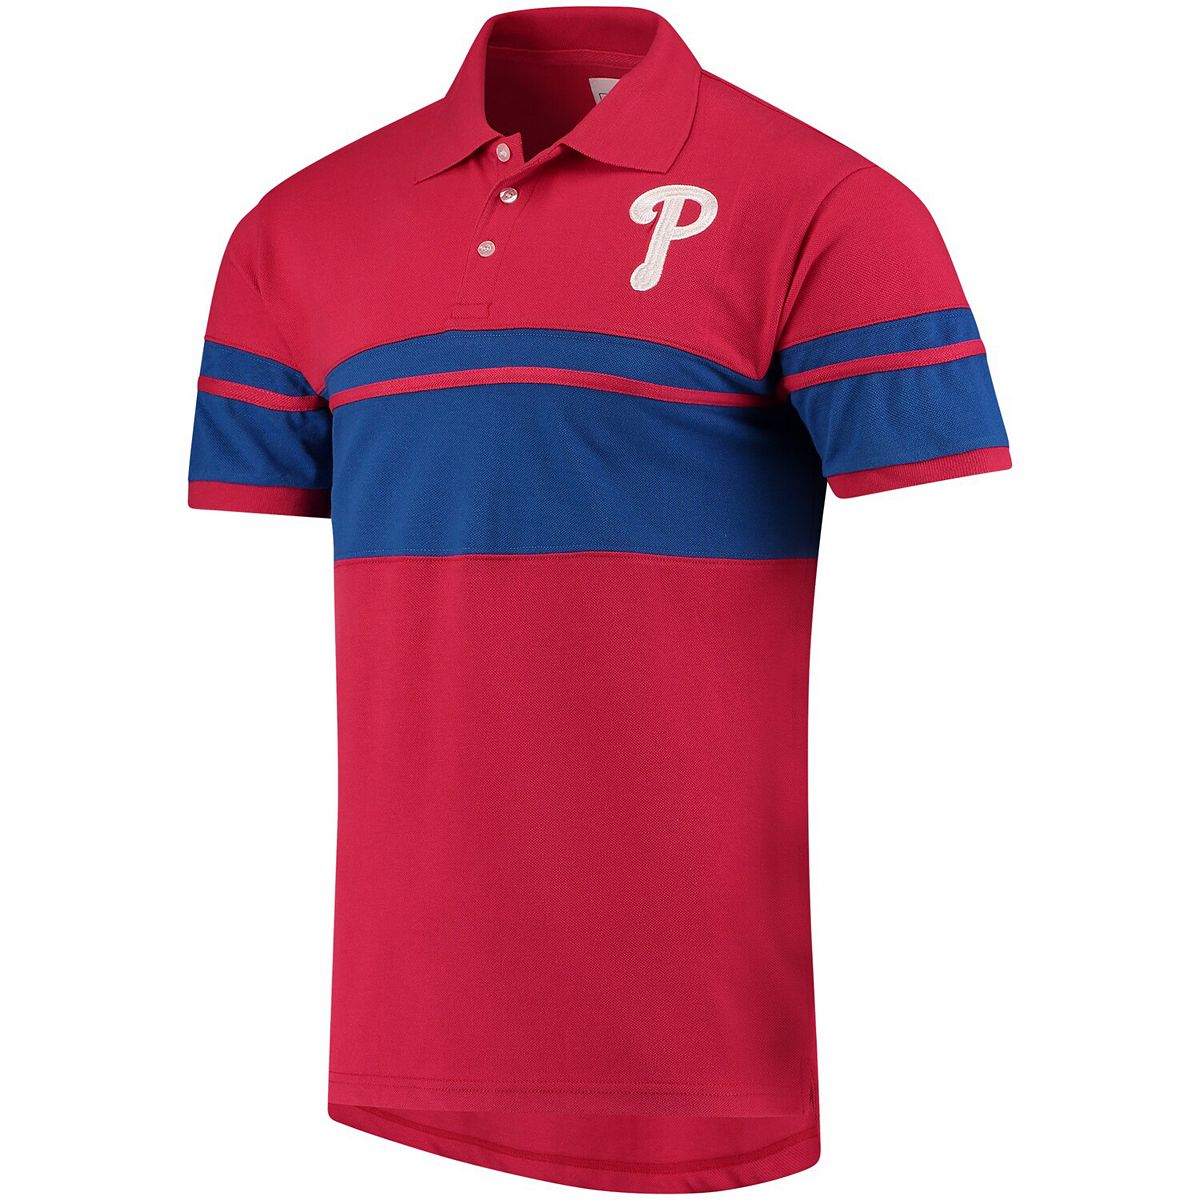 Men's Red/Royal Philadelphia Phillies Cotton Stripe Polo hBKOr